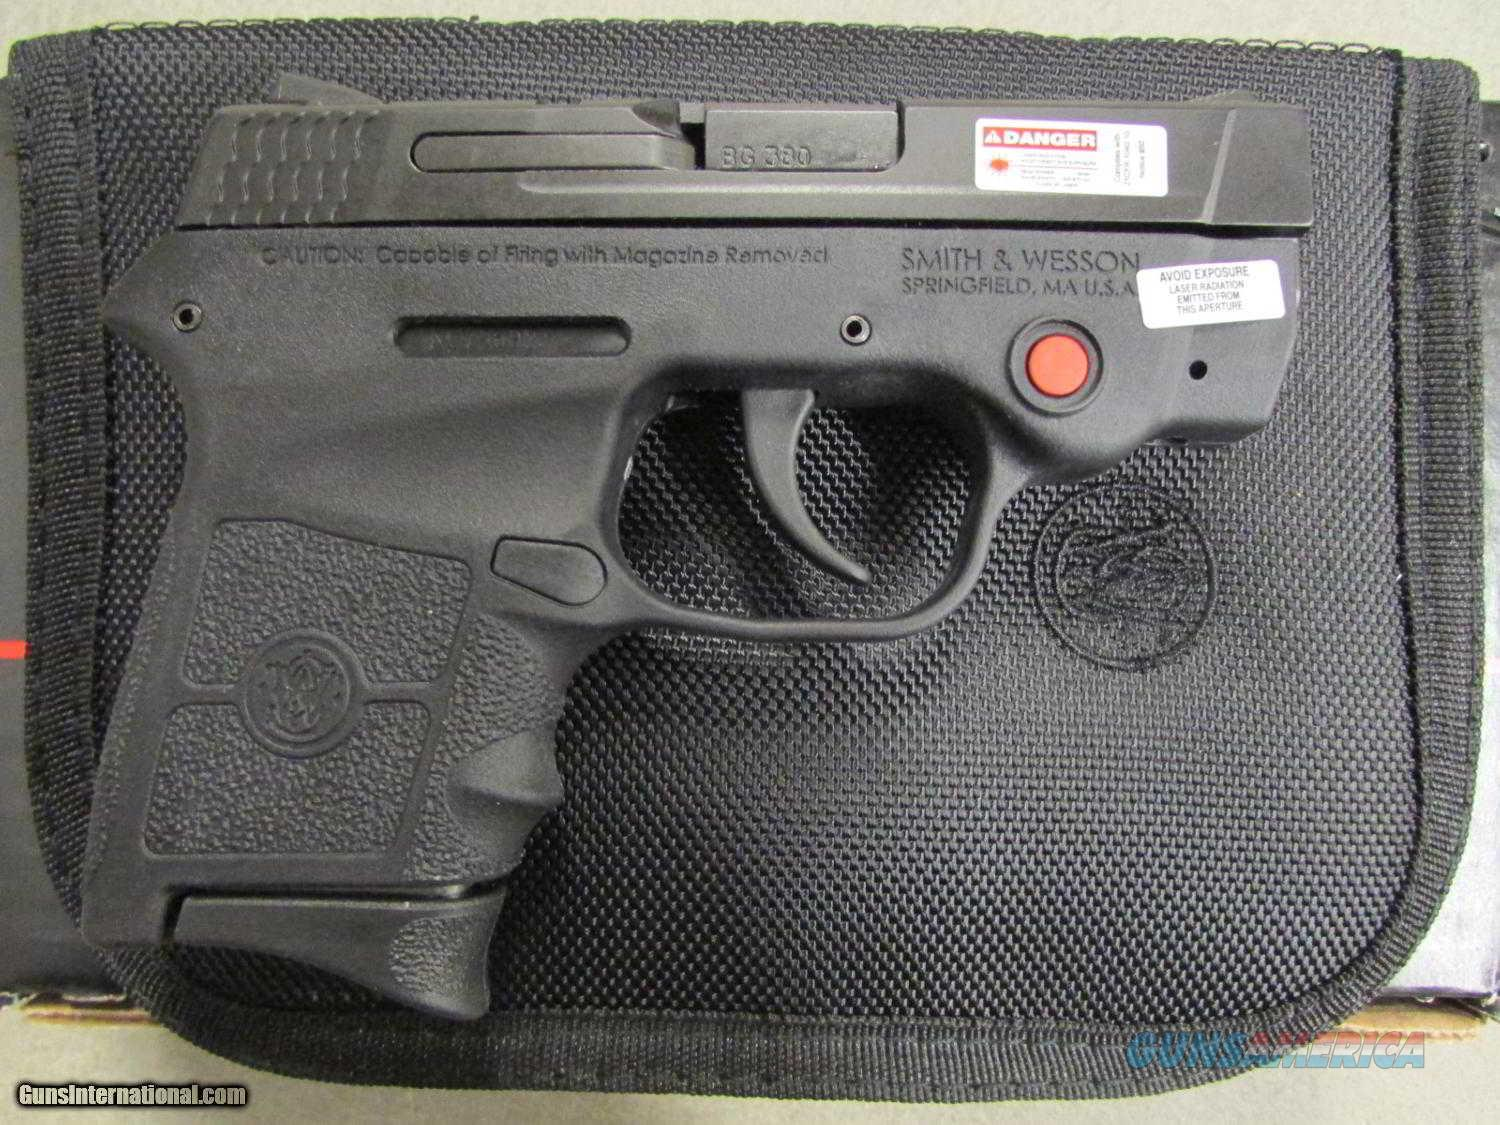 "S&W BODYGUARD 380 6RD 2.75"" CMT LSR BLK  Guns > Pistols > Smith & Wesson Pistols - Autos > Polymer Frame"